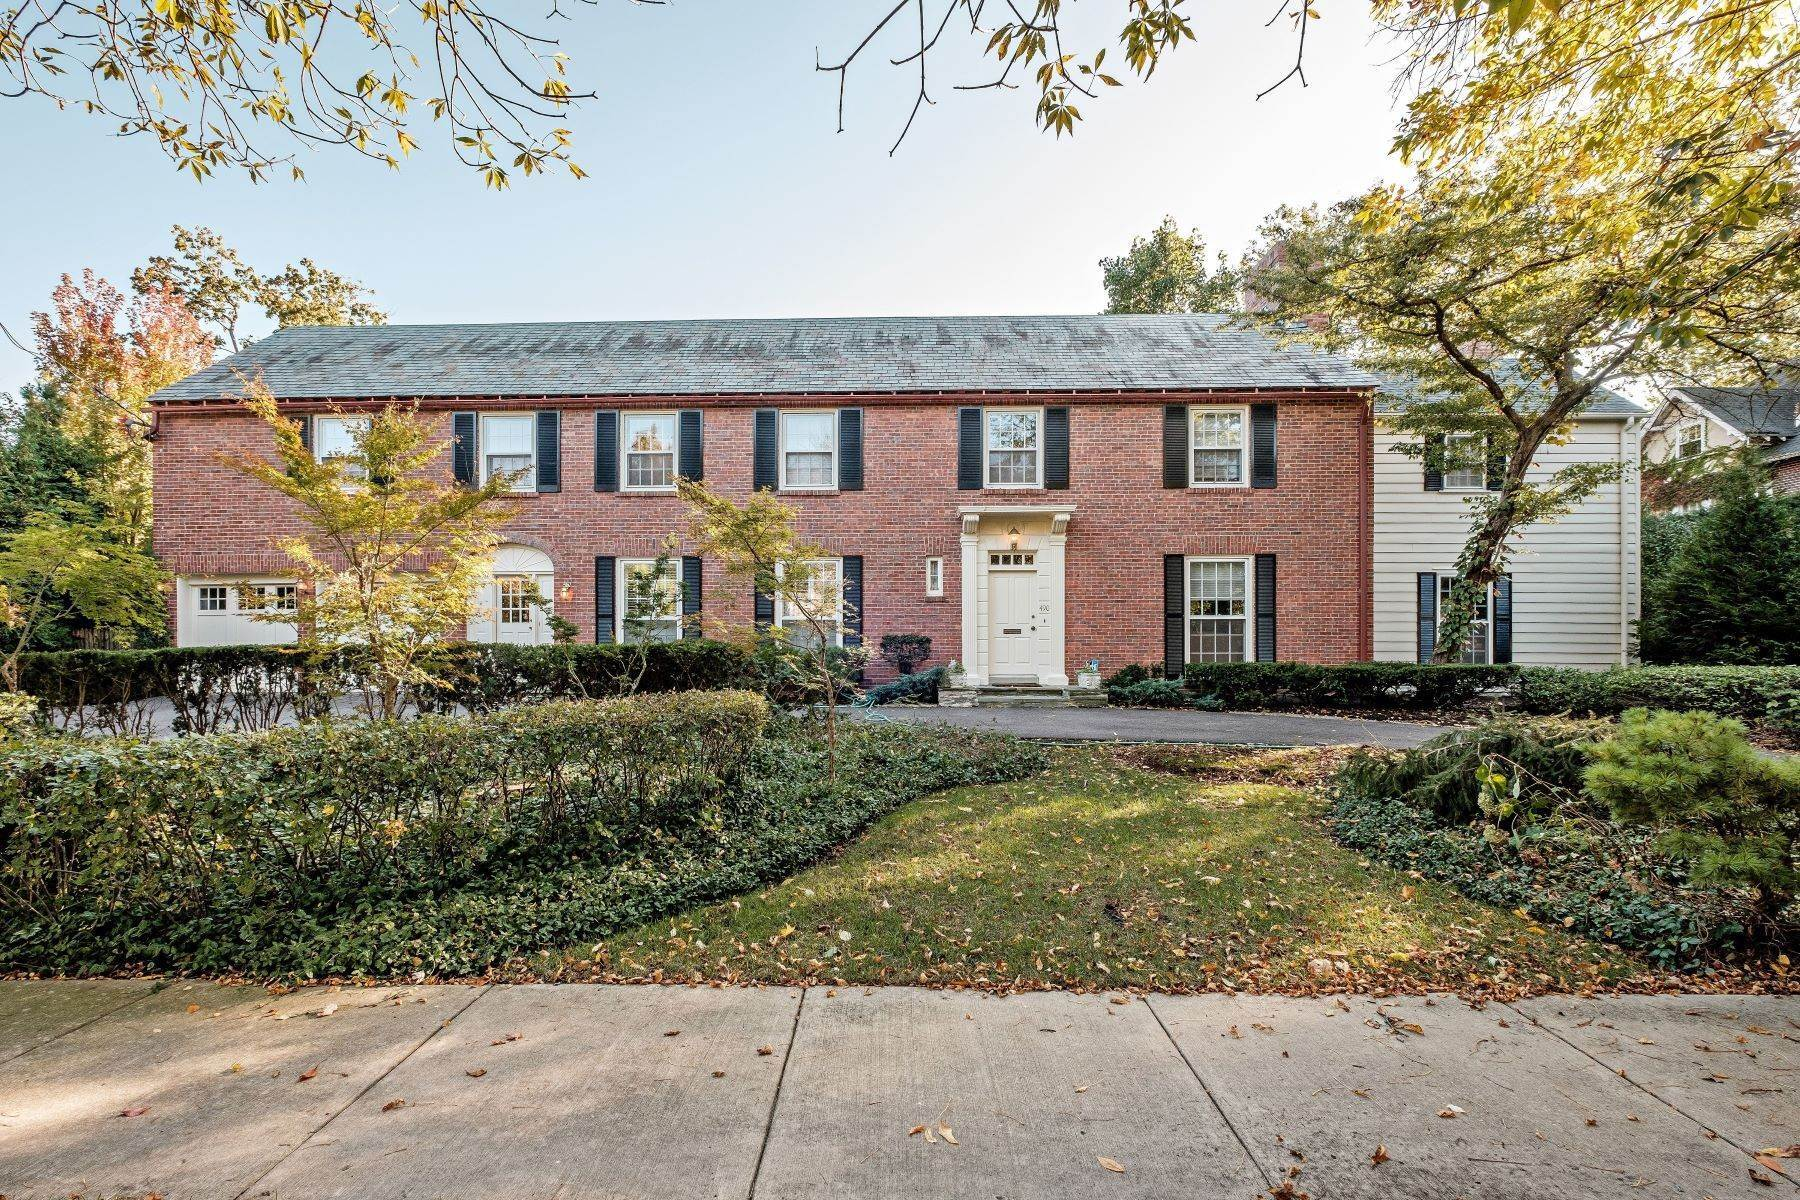 Property for Sale at 490 Cherry Street, Winnetka, IL 60093 490 Cherry Street Winnetka, Illinois 60093 United States